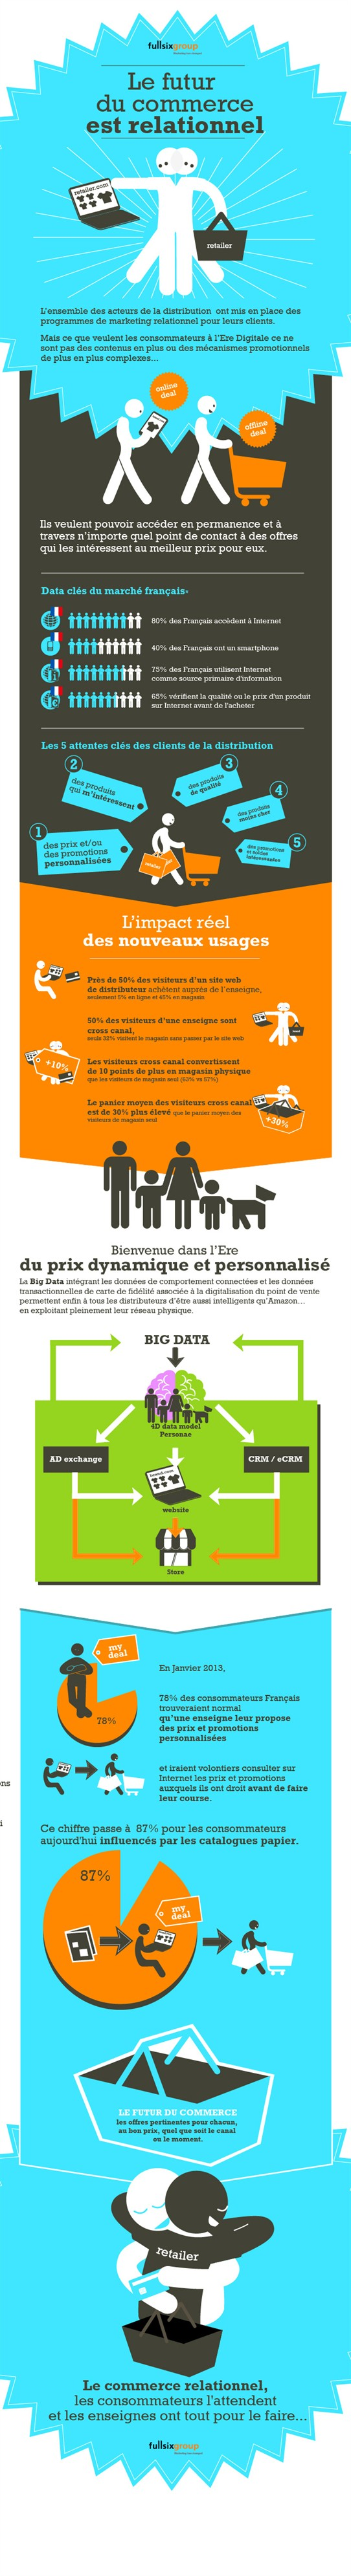 infogra6-commerce-relationnel7-01_542x3983